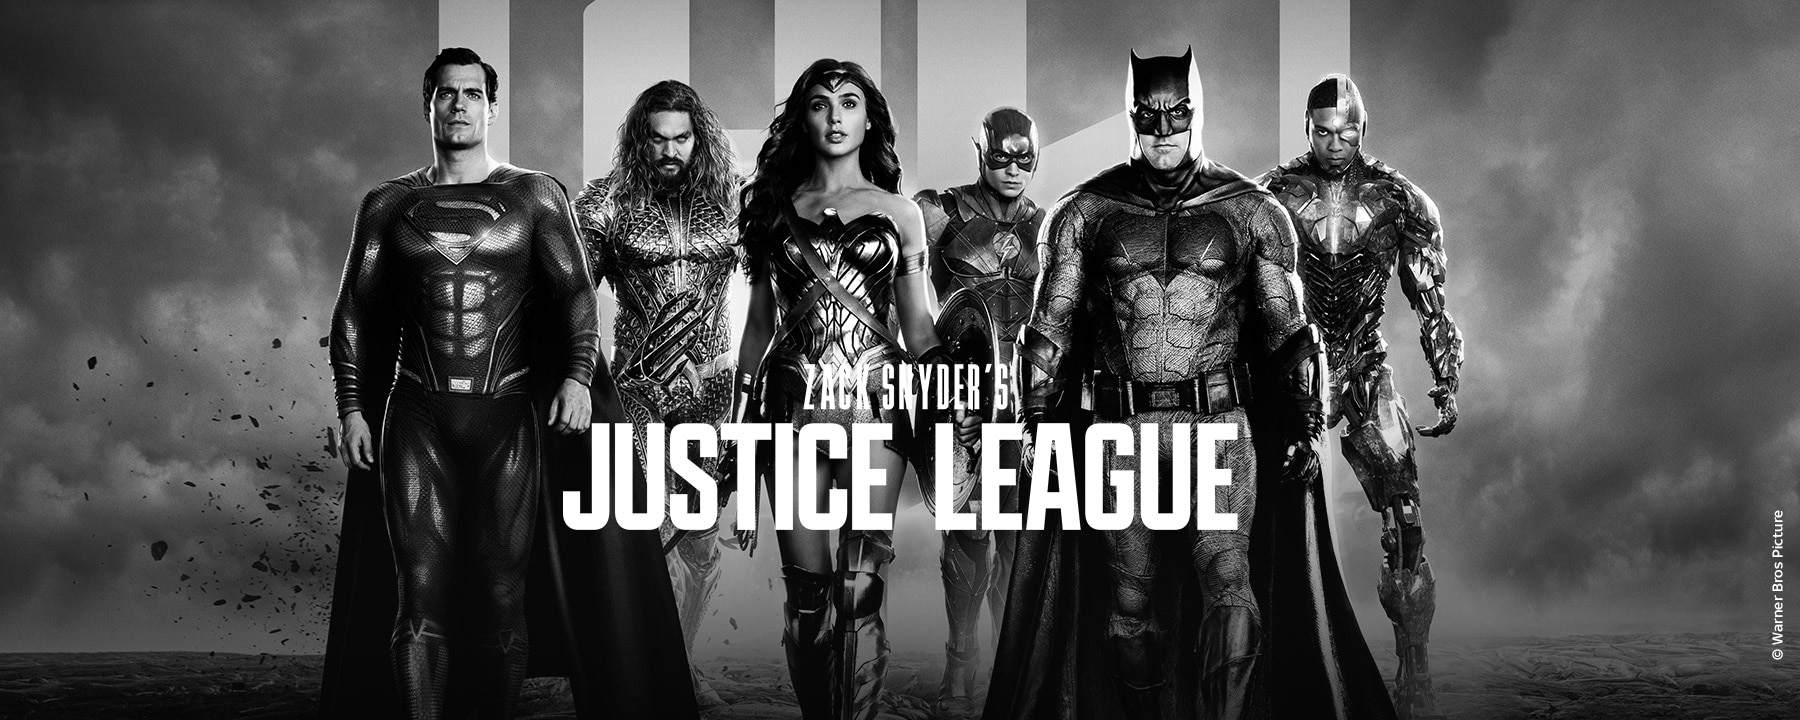 Zack Snyder's Justice League | Sky X